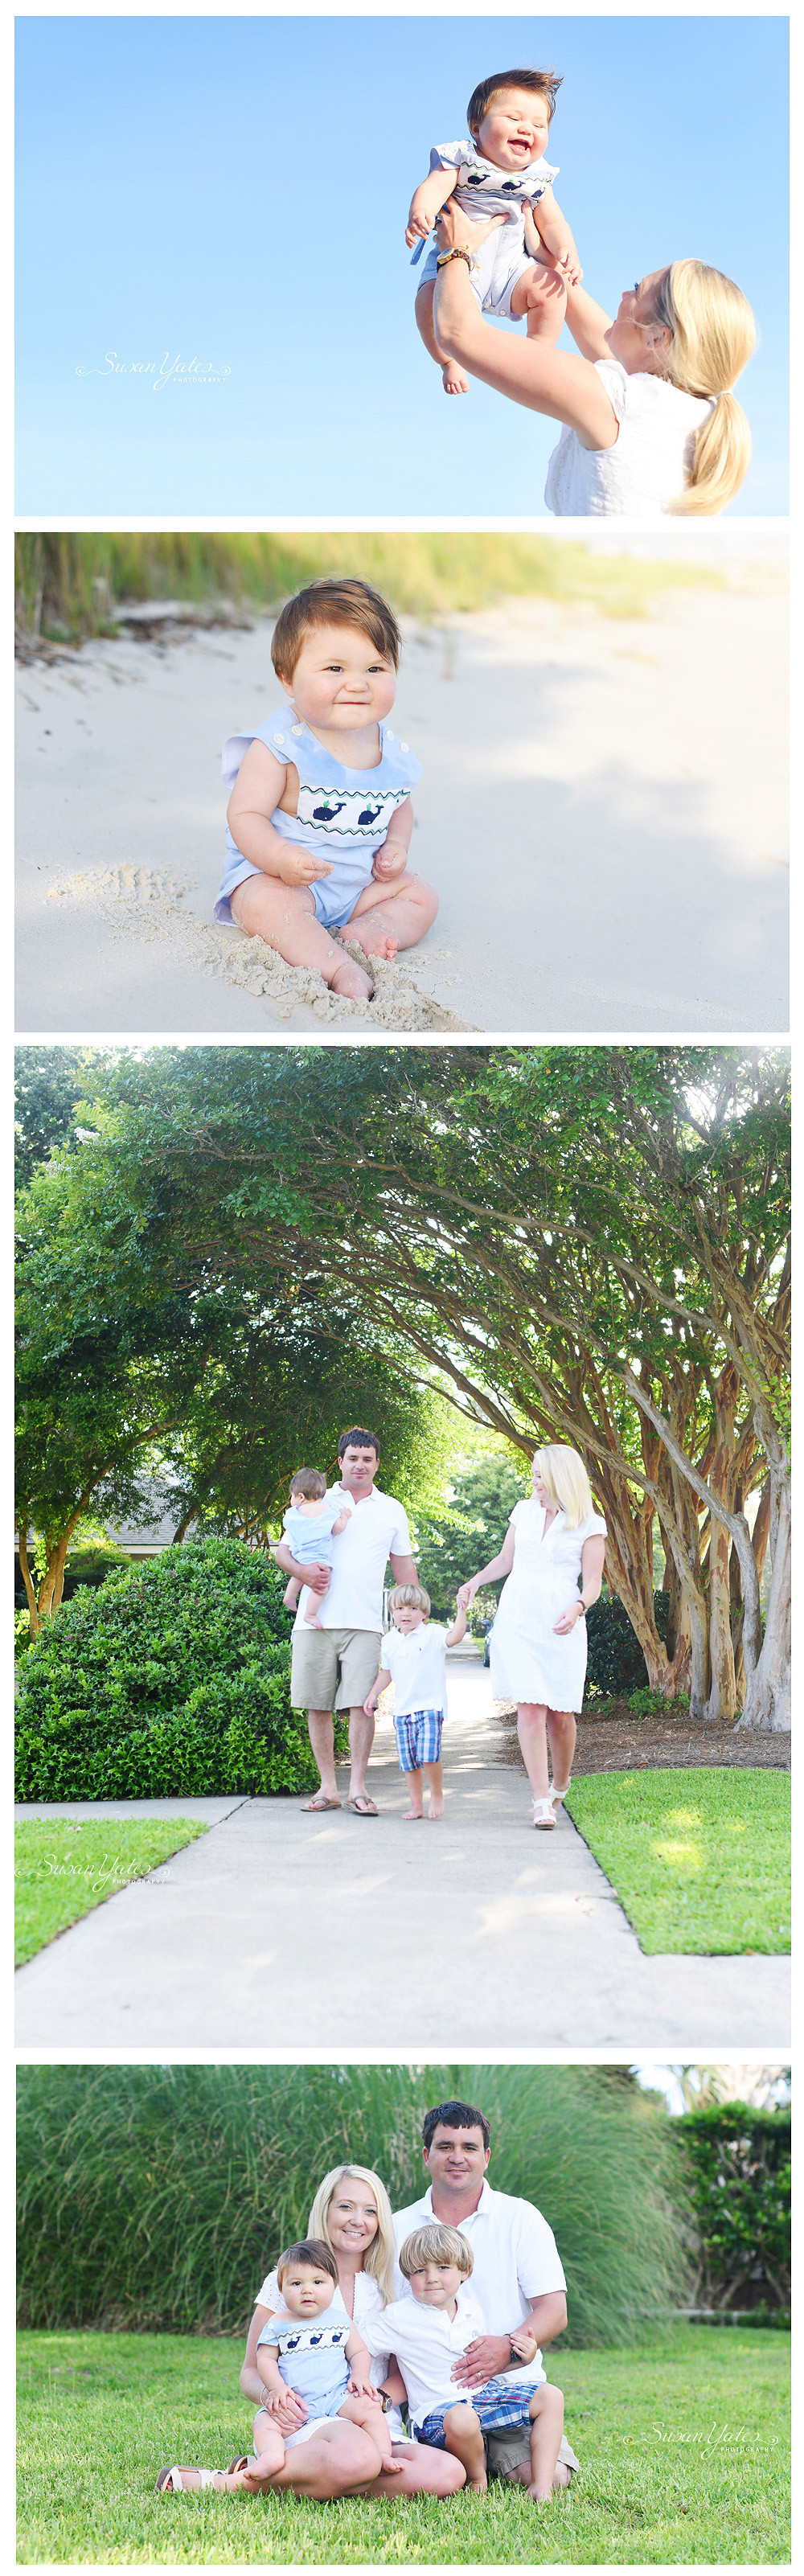 six month old baby session in Morehead City, NC Family photographer